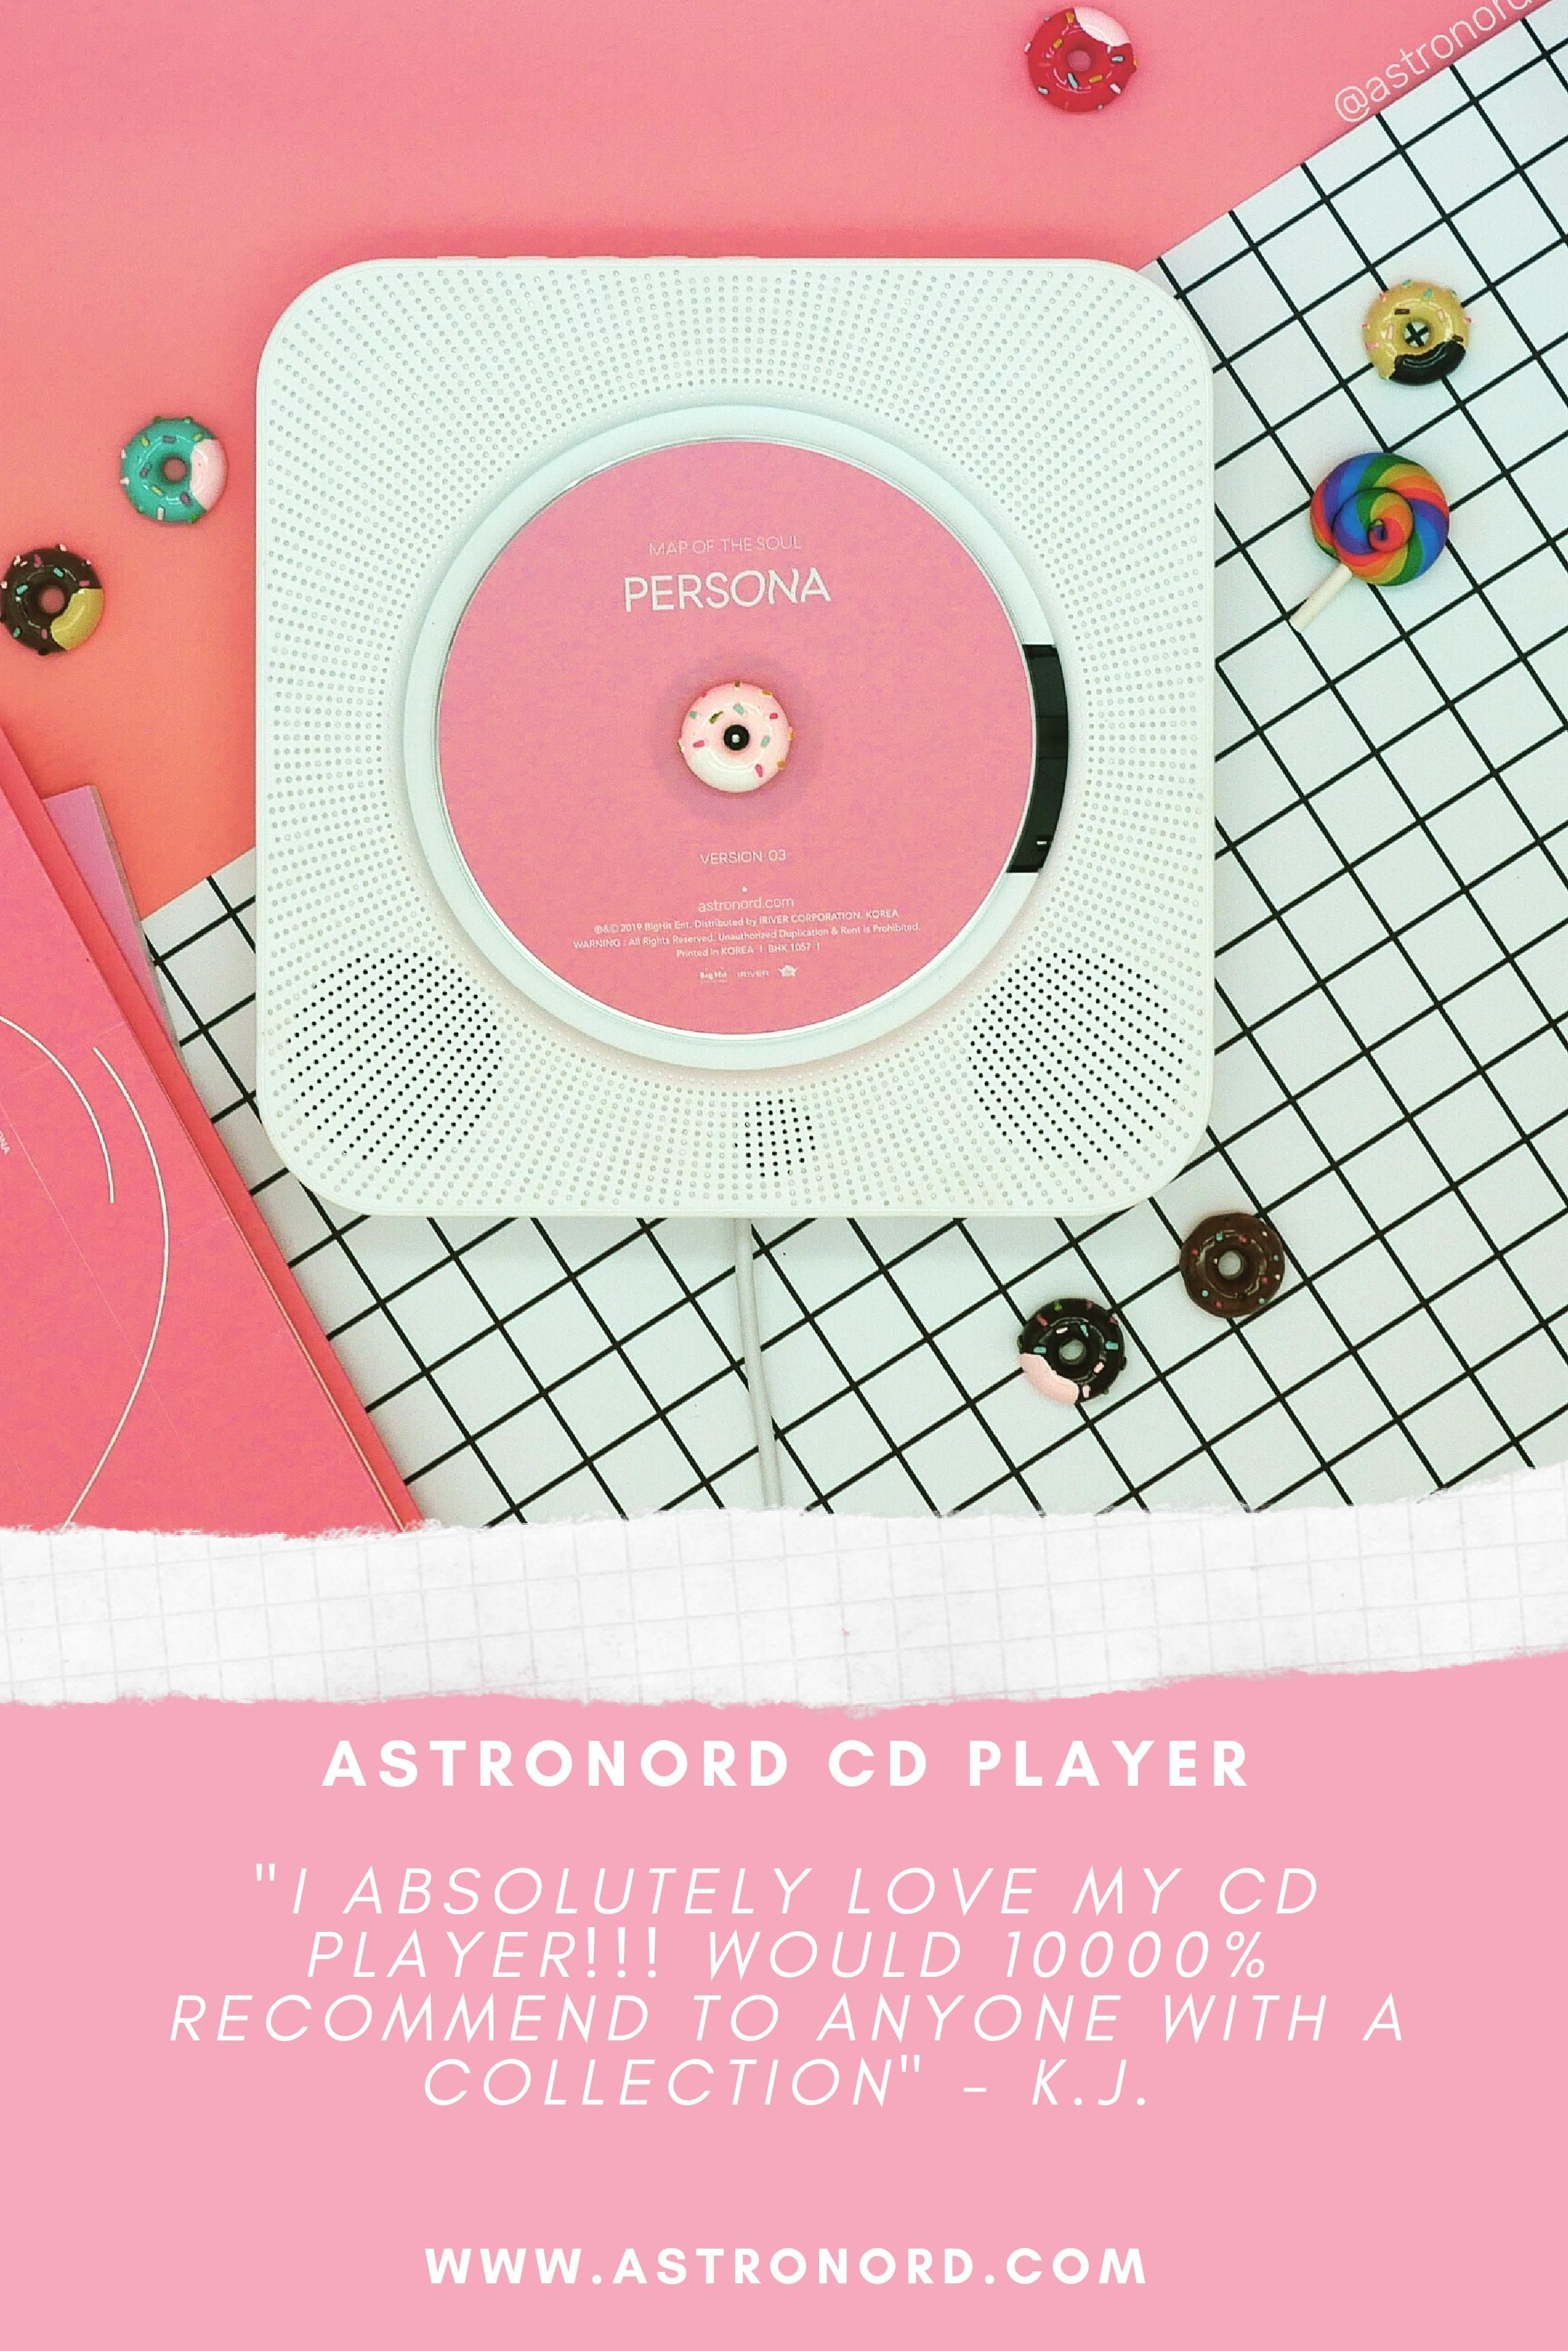 Pin on ASTRONORD CD Player